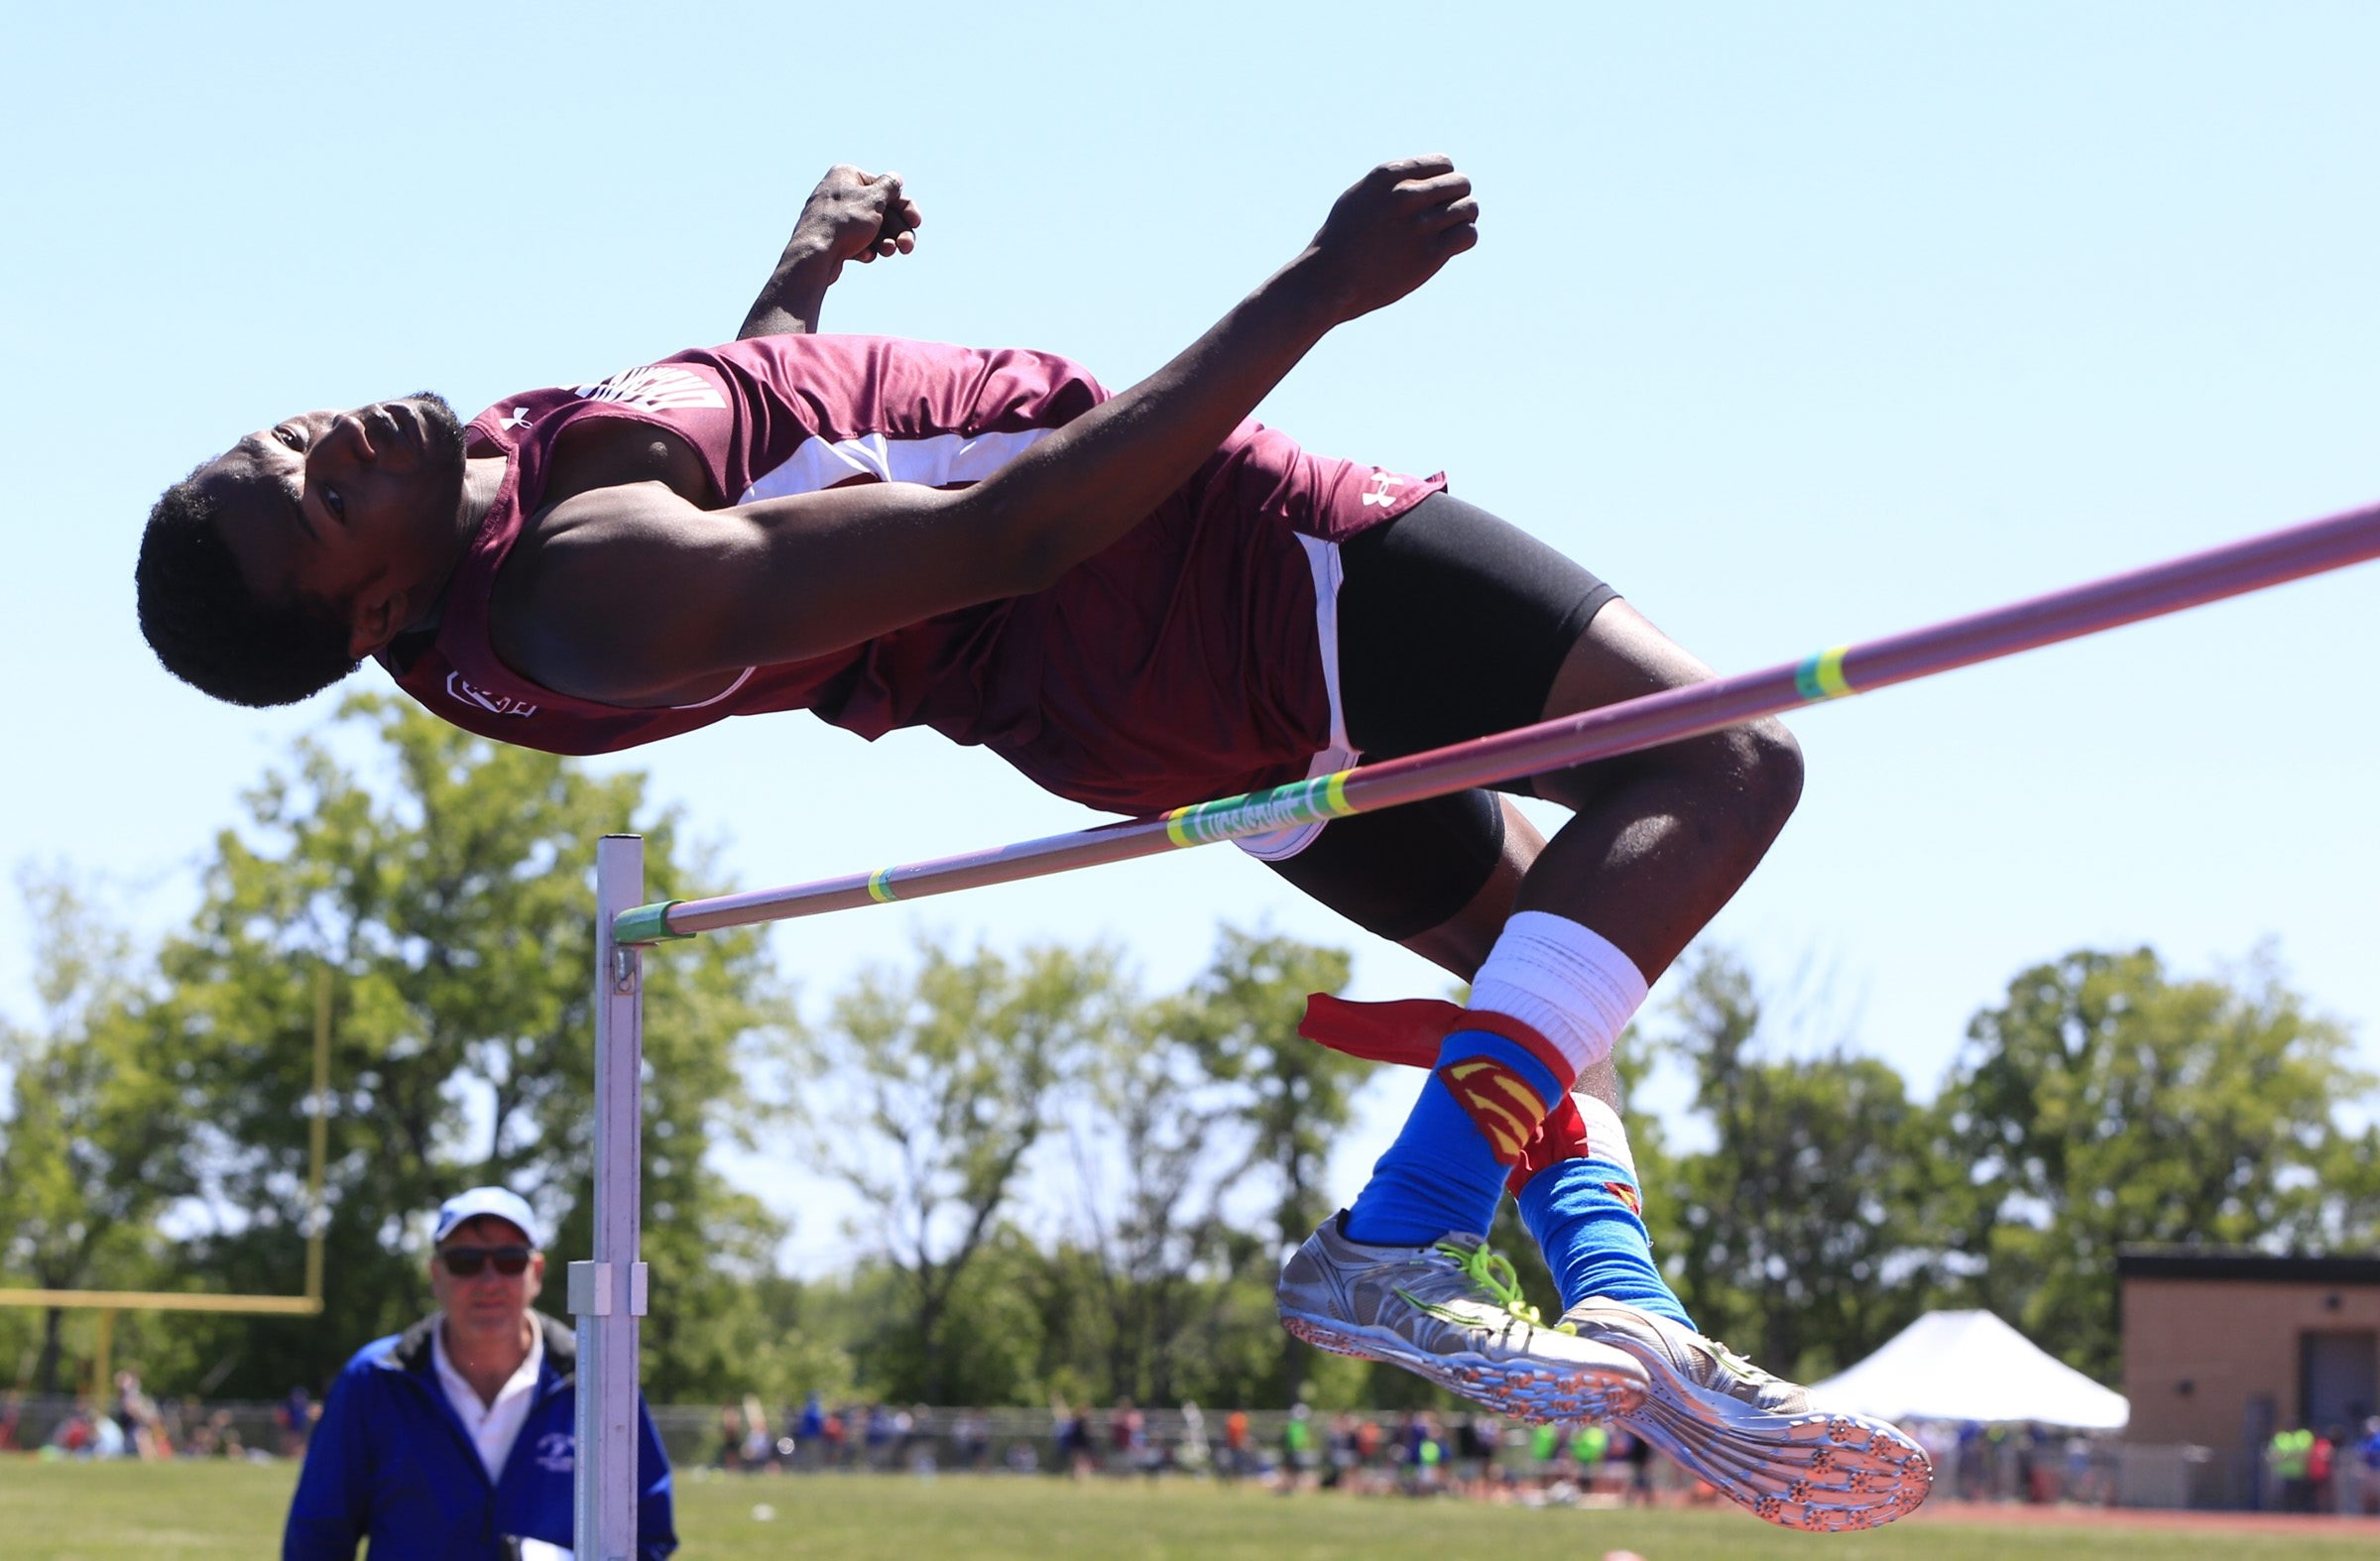 Terius Wheatley from Orchard Park captures the high jump title at the Section VI Outdoor Track & Field Championship.